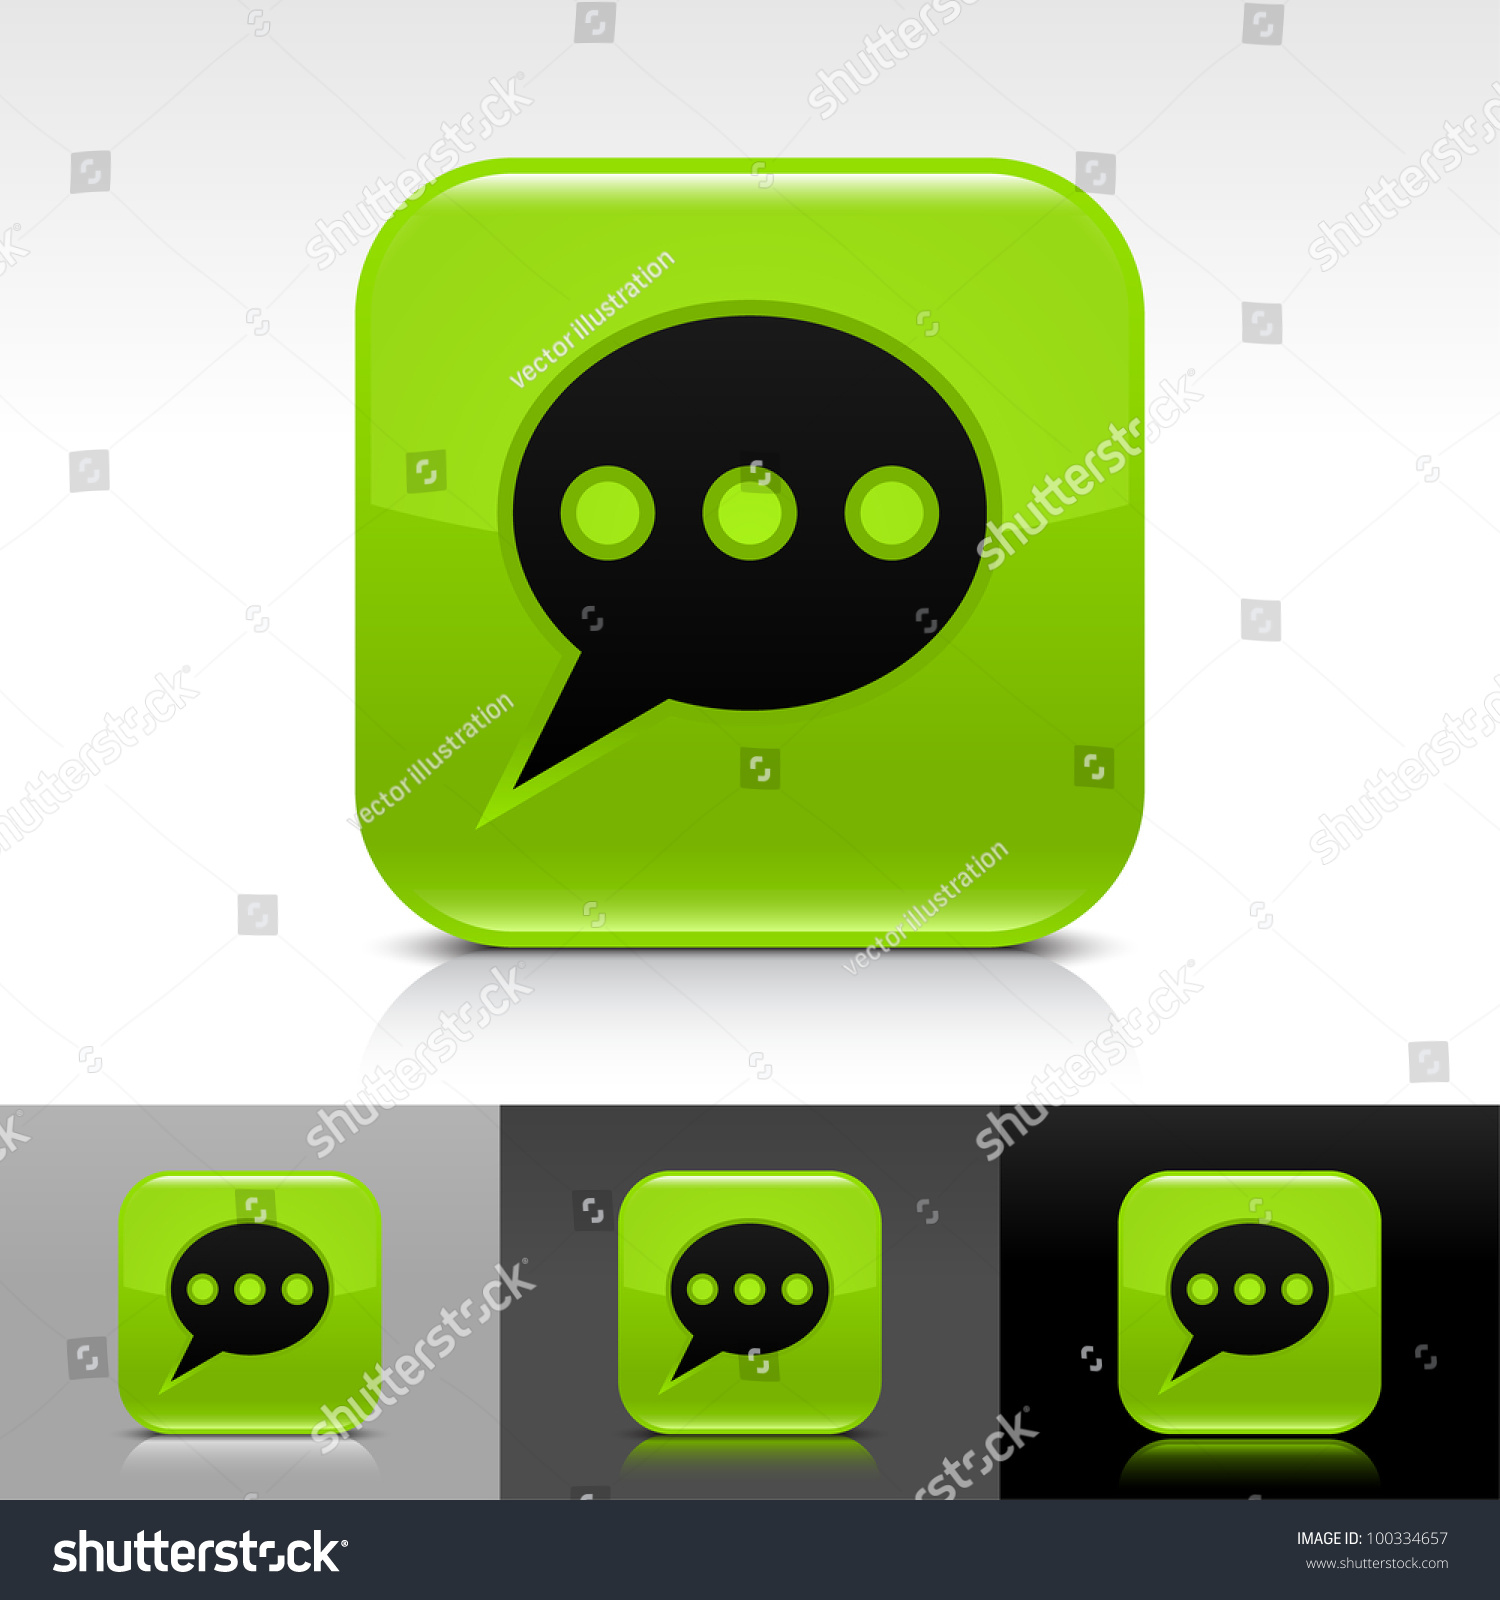 green chat room